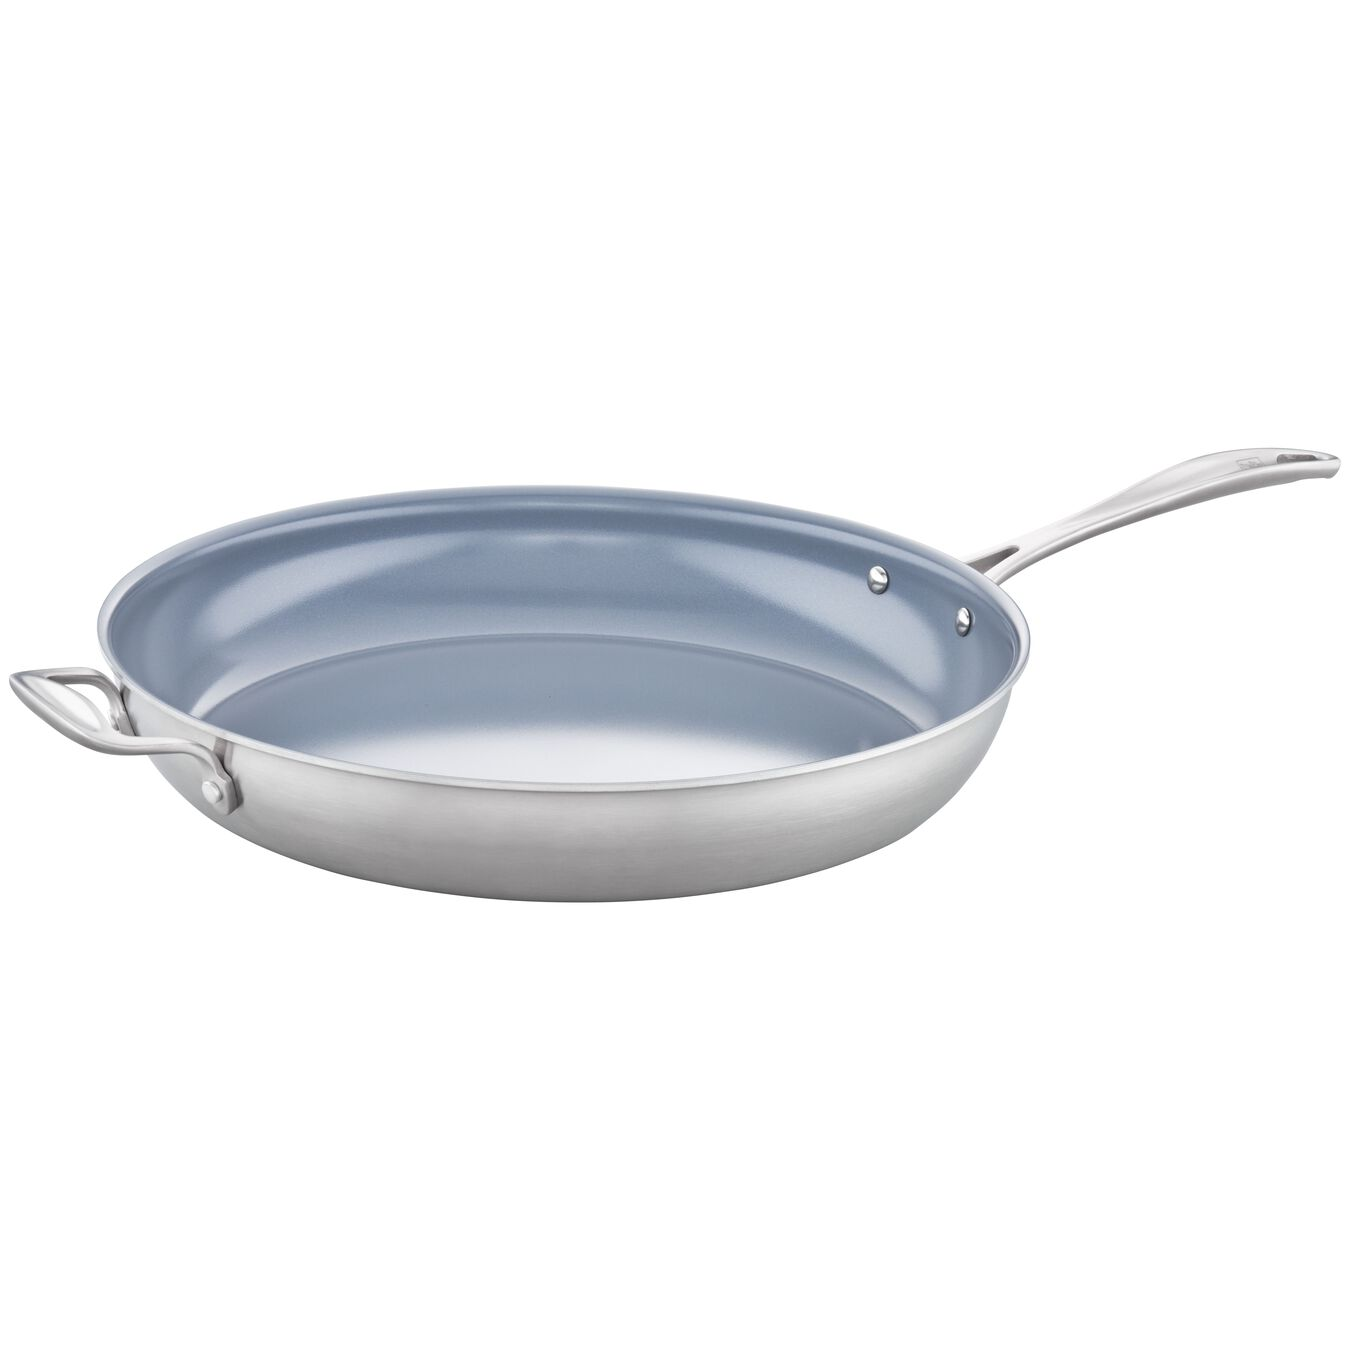 14-inch, 18/10 Stainless Steel, Non-stick, Frying pan,,large 1